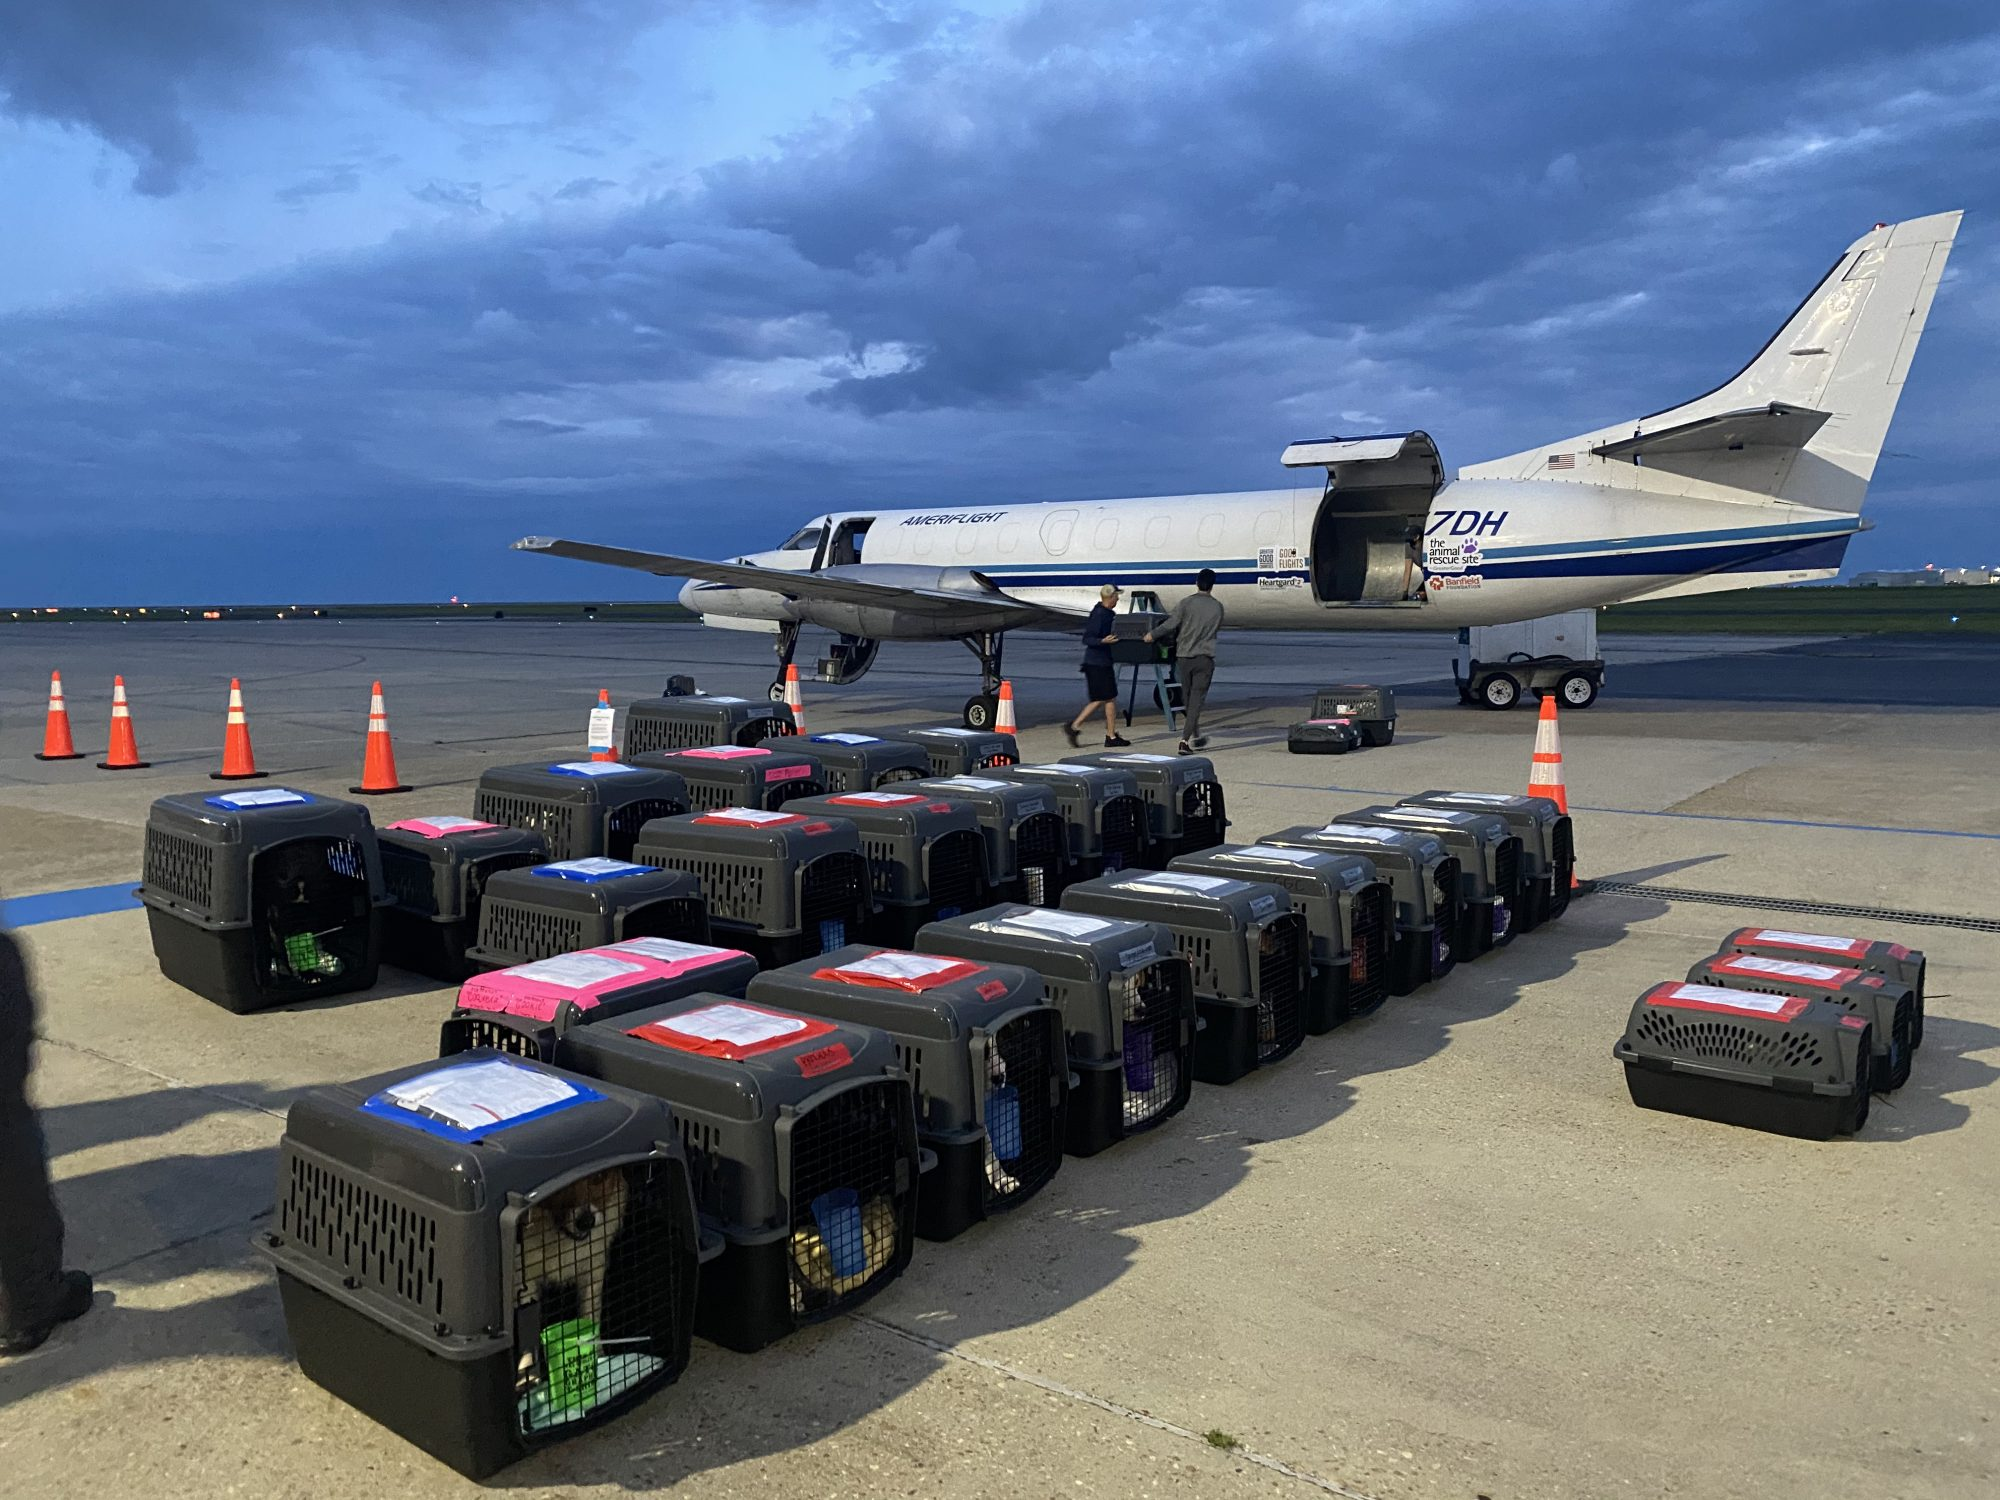 Crates on Tarmac in New Orleans